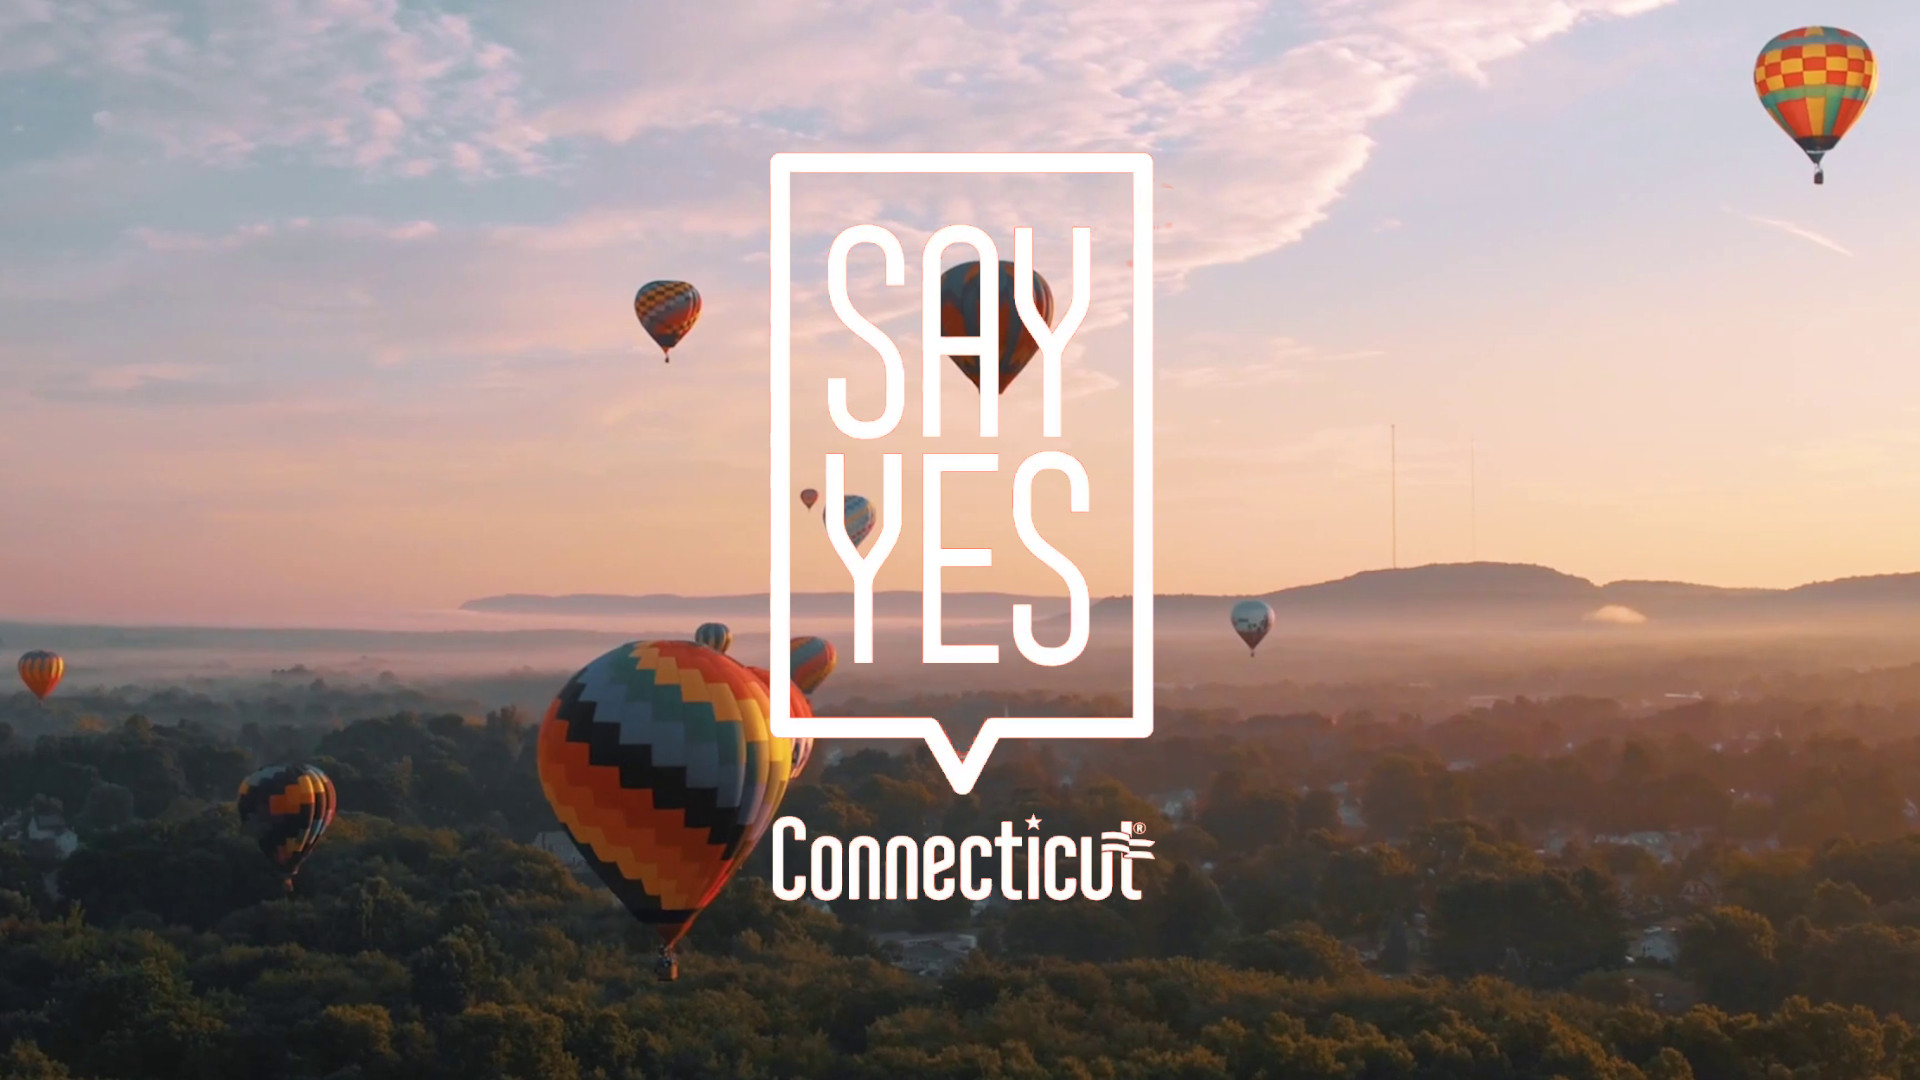 #SayYesCT, Say Yes Connecticut Summer Marketing Campaign